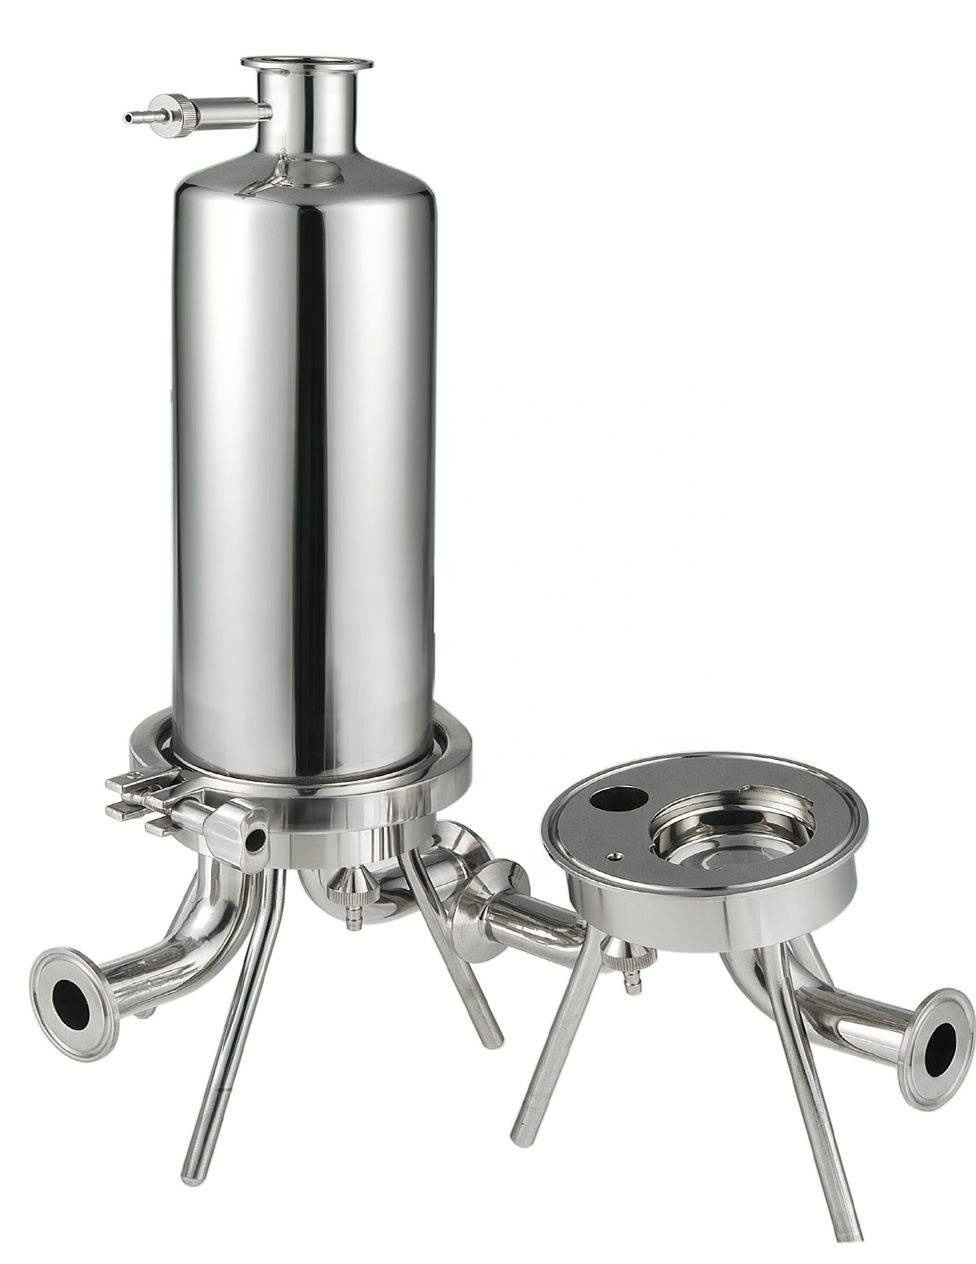 Stainless Steel Cartridges Filter Housing For Water Treatment